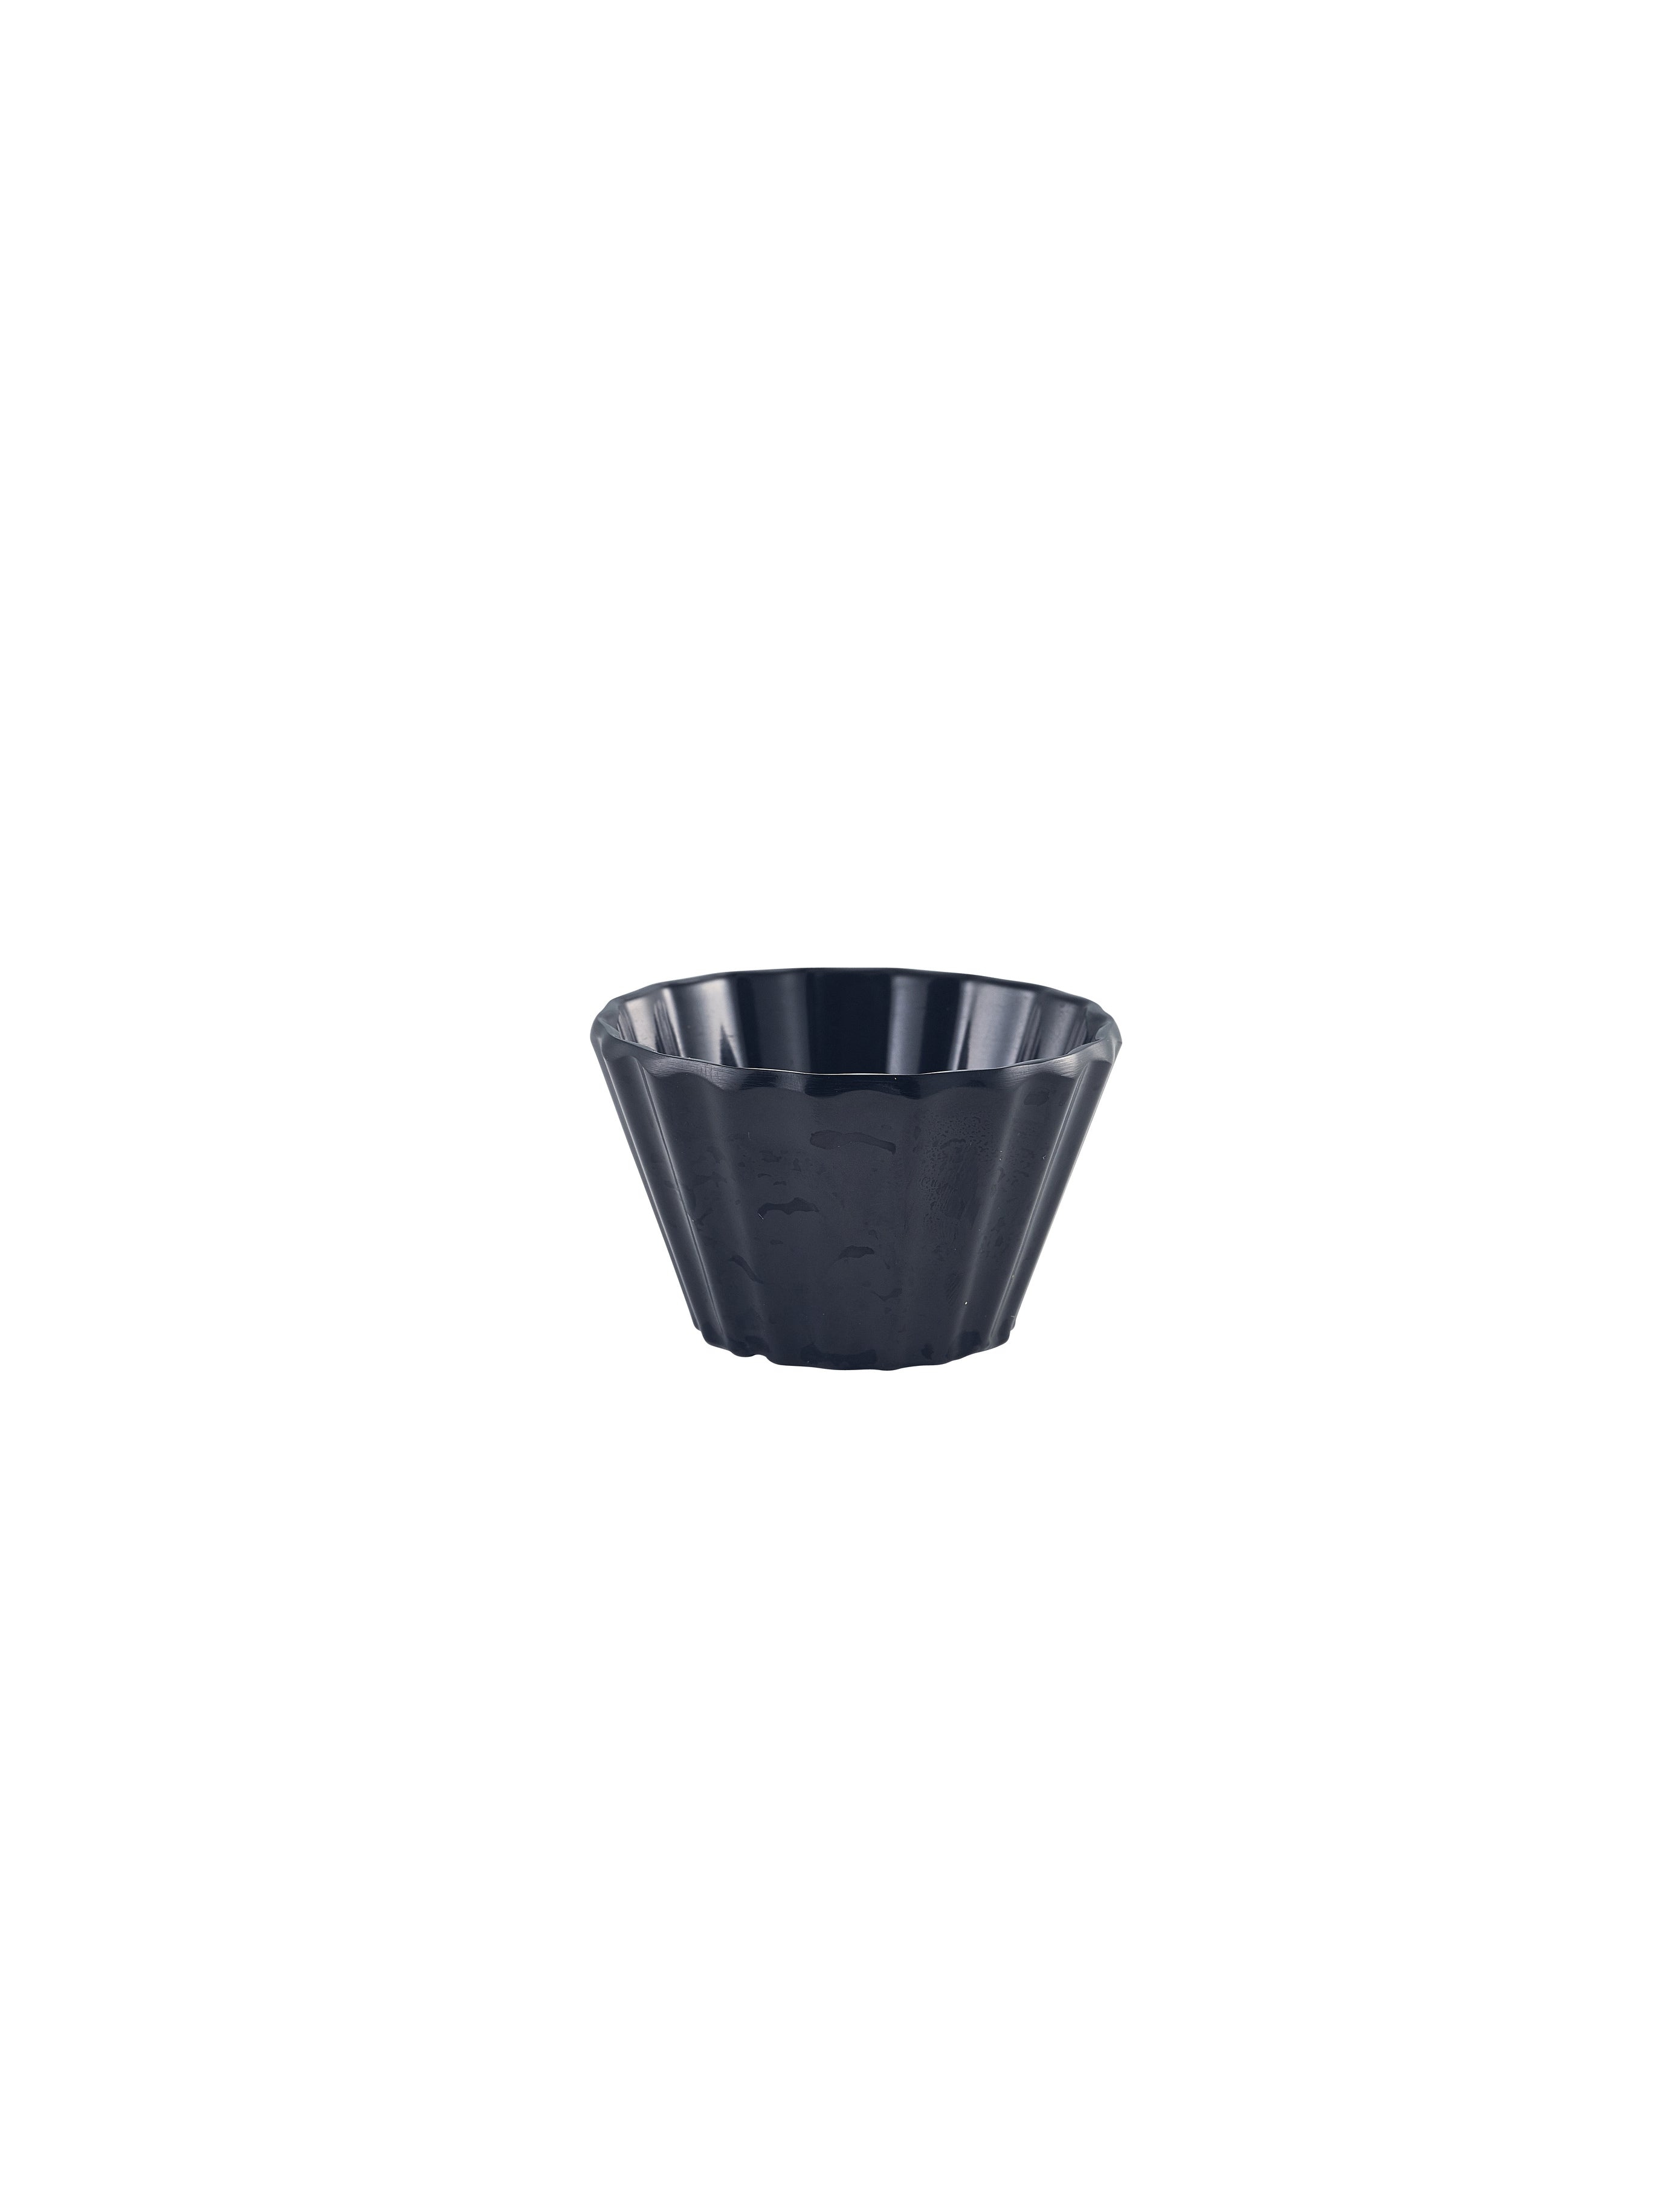 Black Cupcake Ramekin 45ml/1.5oz